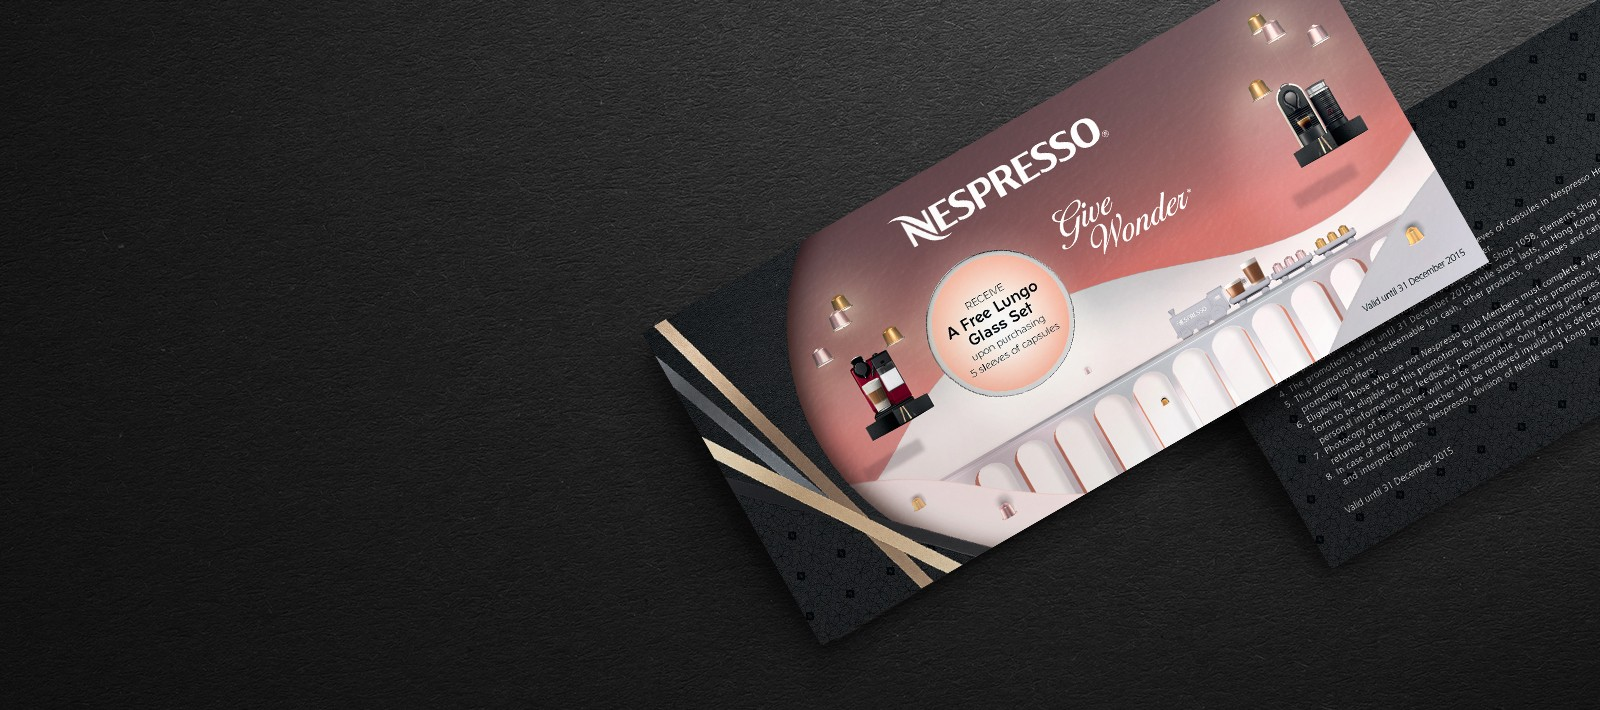 Nespresso-consumer-integrated-marketing-2